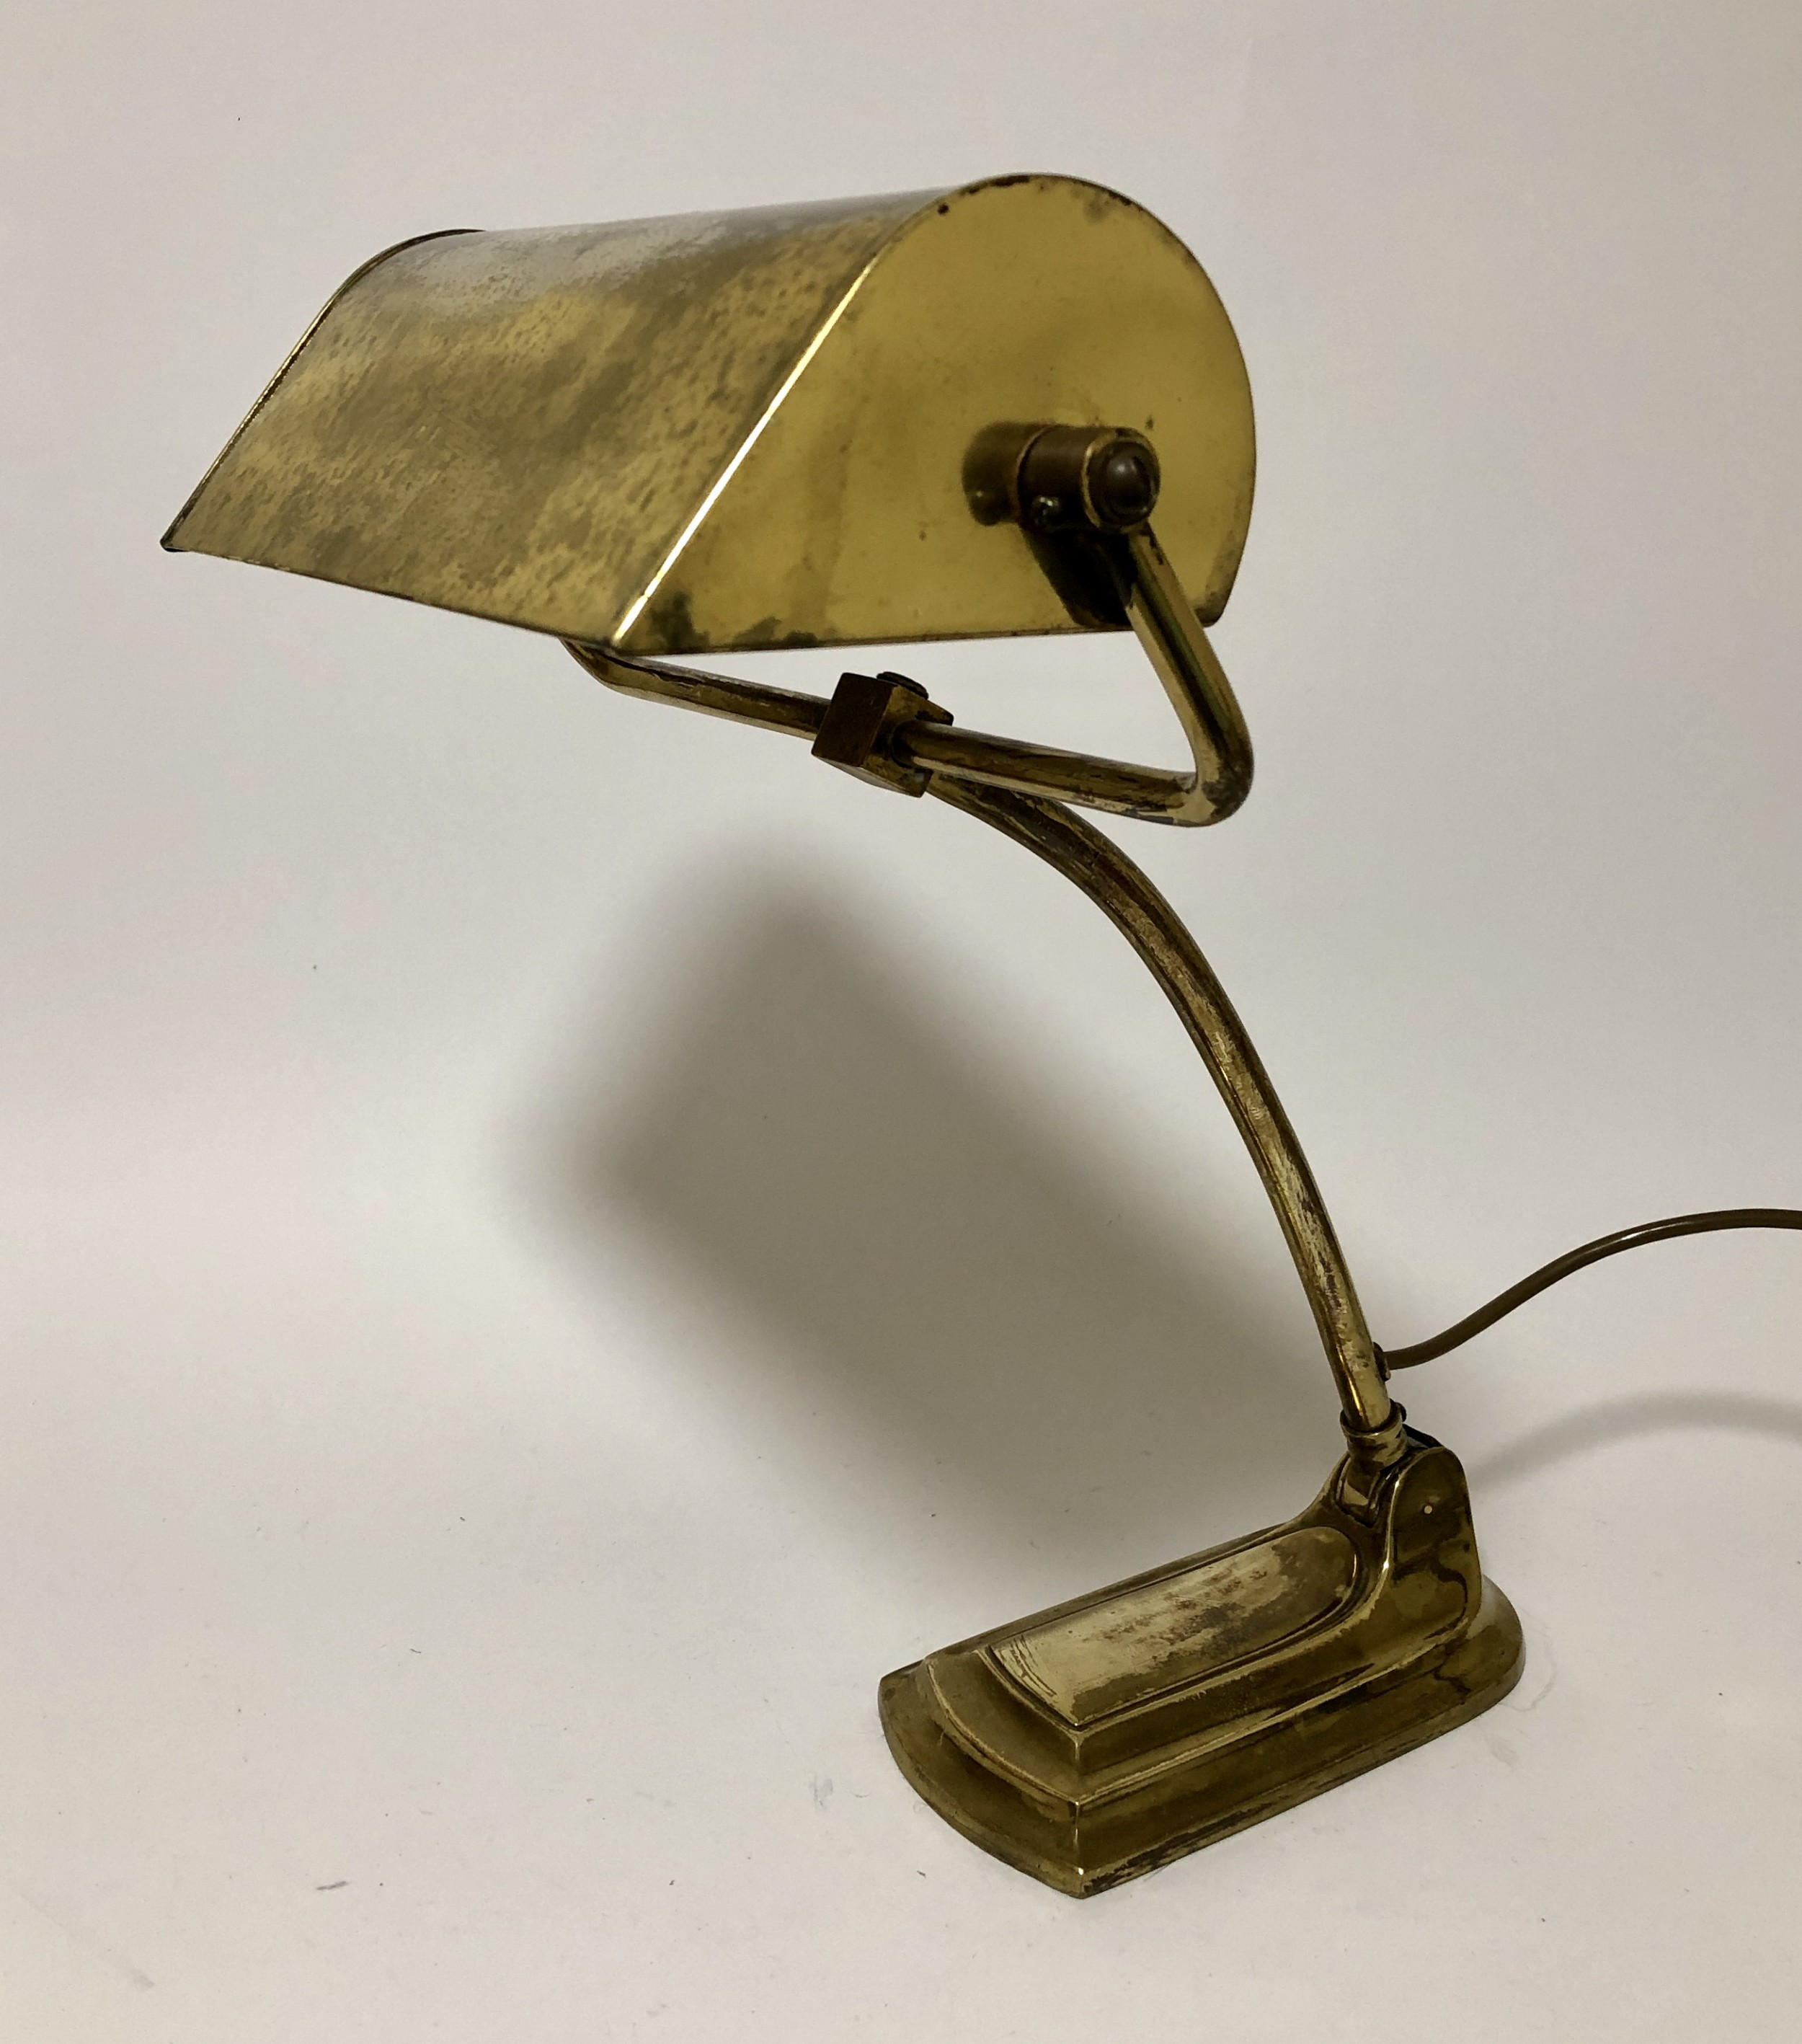 Amazing Antique Vintage Art Deco Adjustable Brass Desk Lamp 595706 Download Free Architecture Designs Viewormadebymaigaardcom